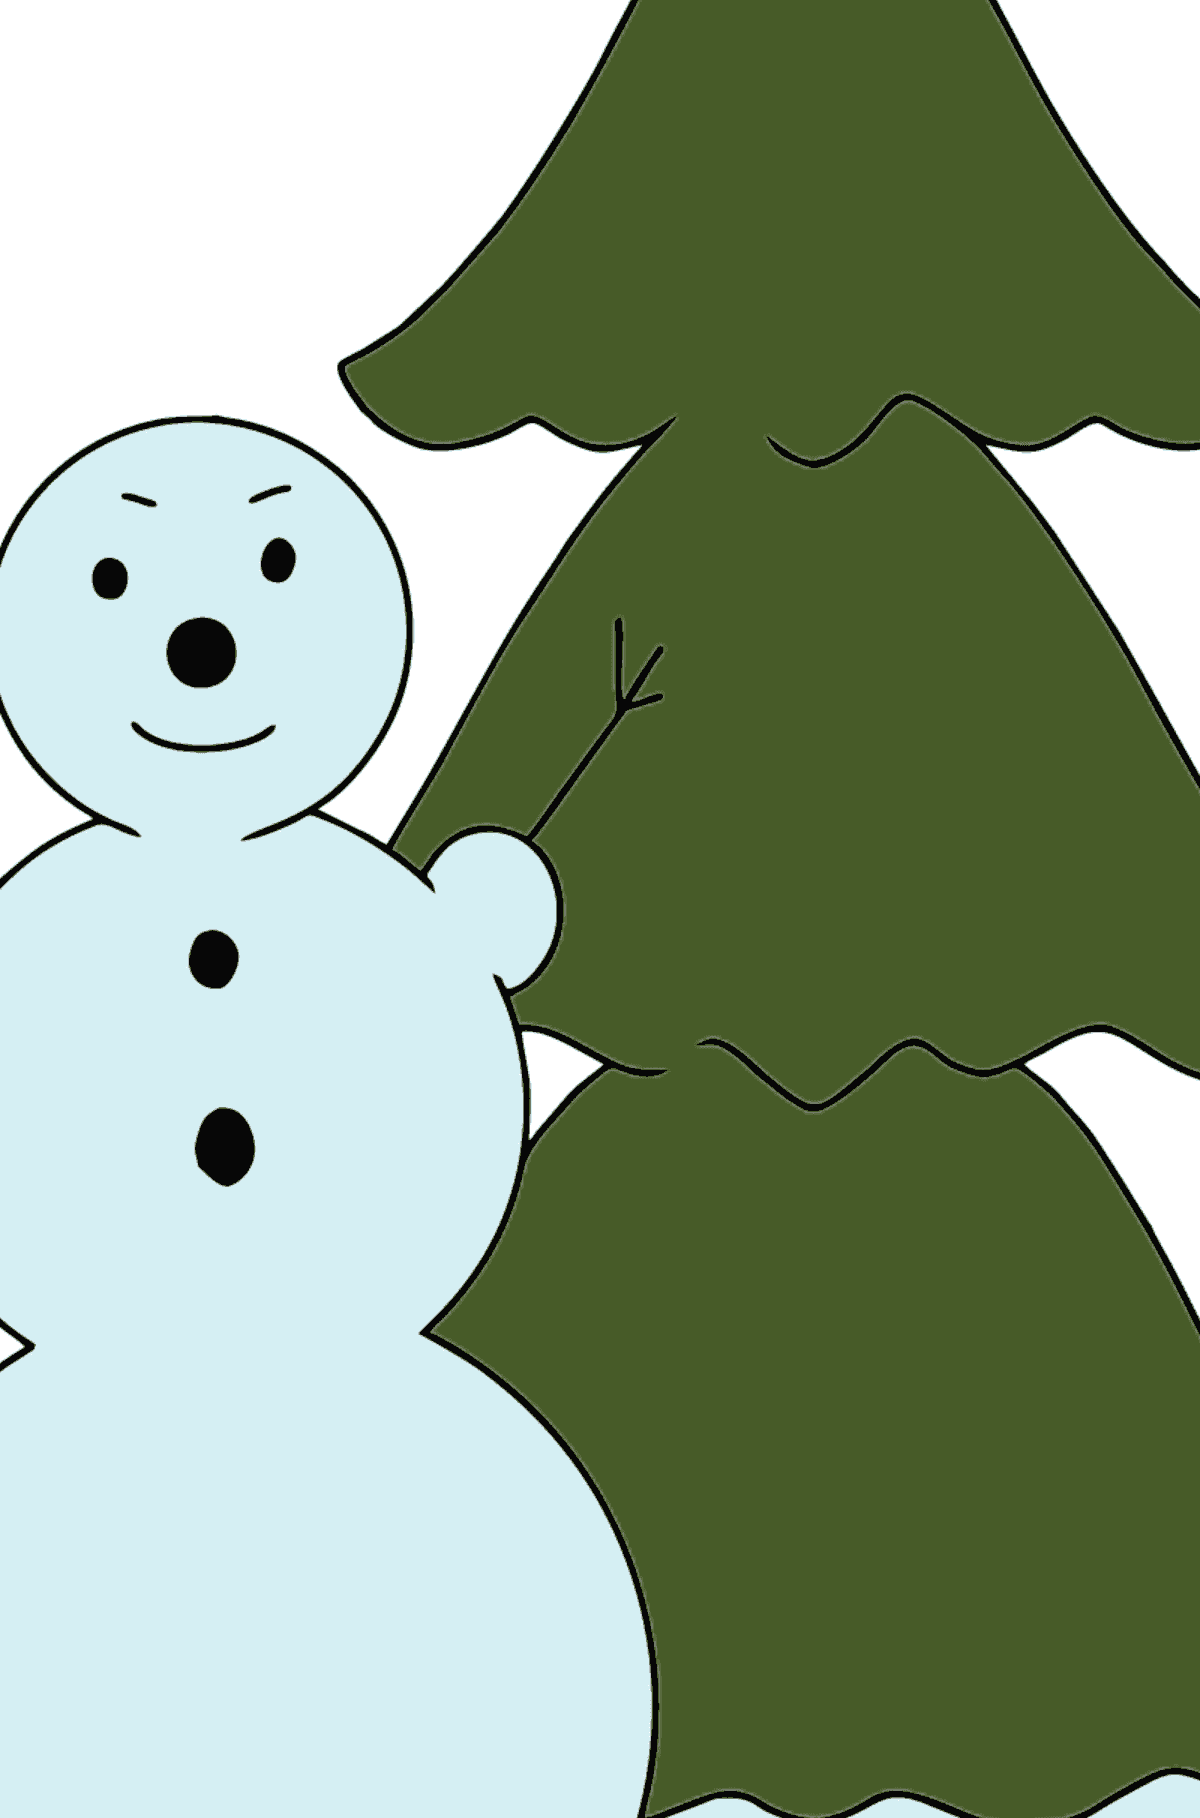 Winter Coloring Page - A Snowman for Children  - Color by Number